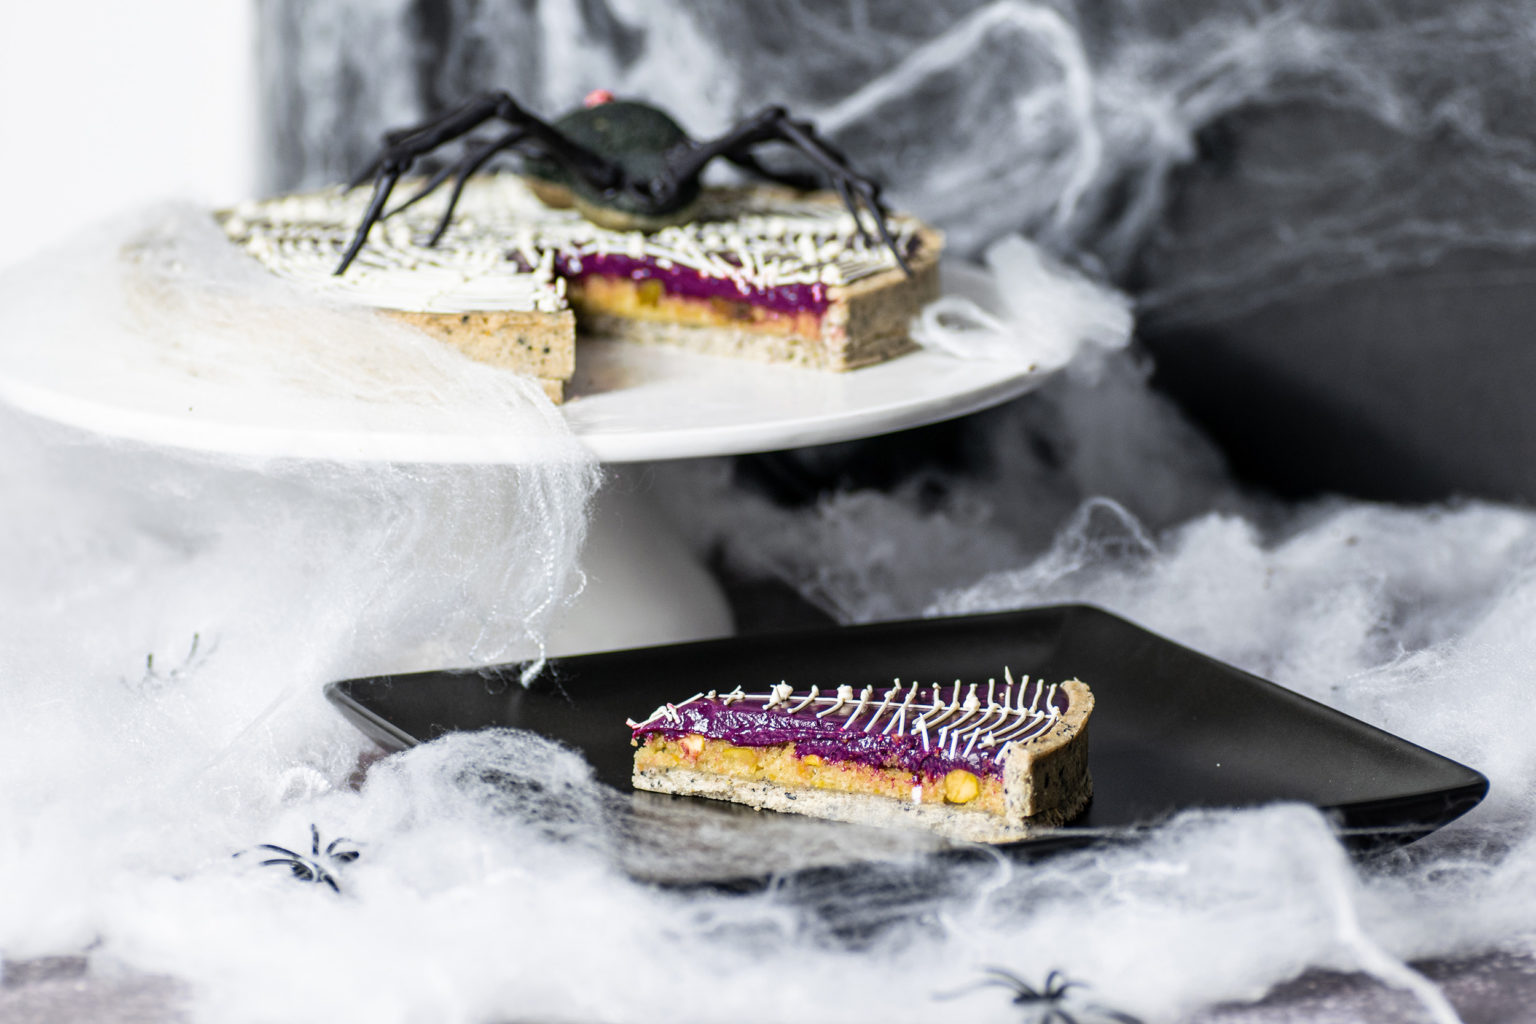 Slice of Halloween tart on plate with spiderweb tart in background and spiderwebs